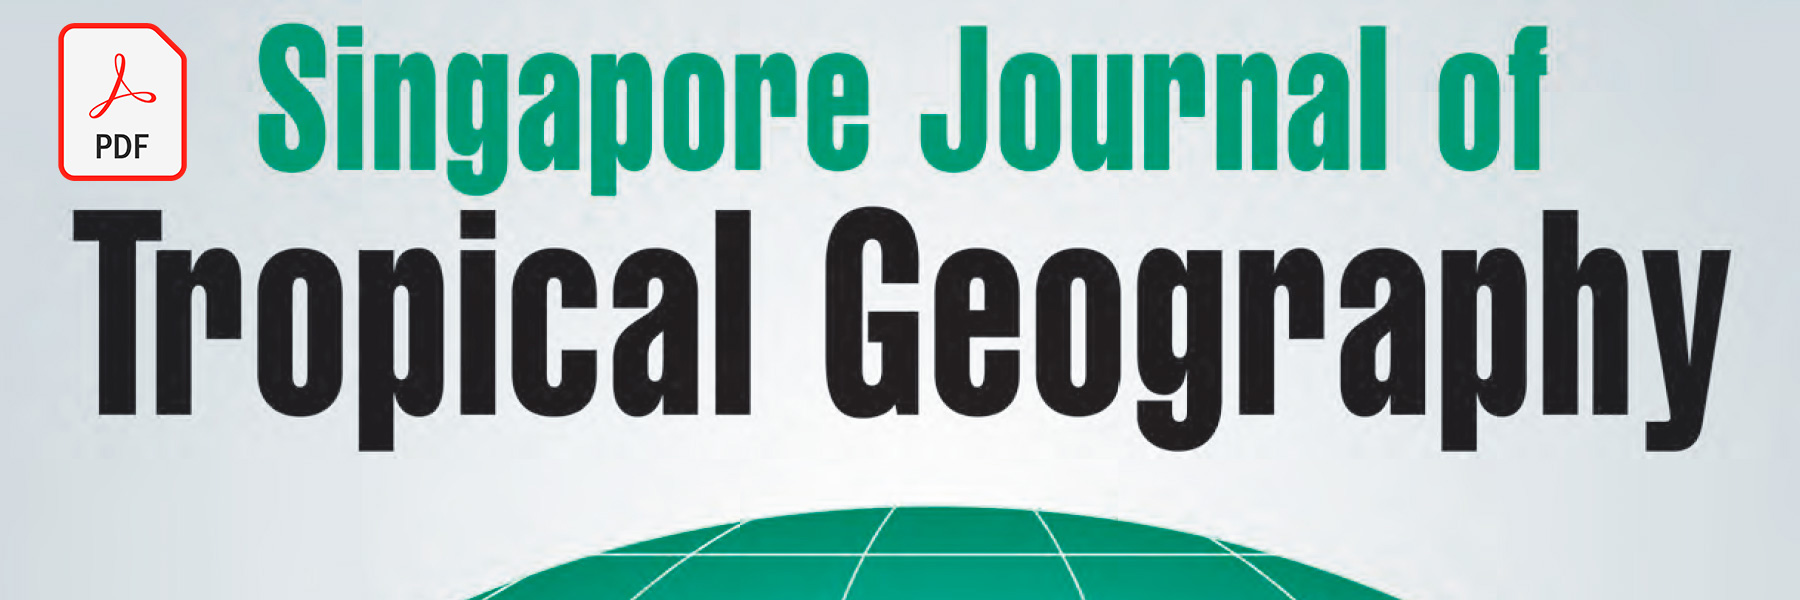 Dr Steven A Martin | Thai Geography Literature Review and Research | 2020 Singapore Journal of Tropical Geography | Systematic Review Presentation PowerPoint